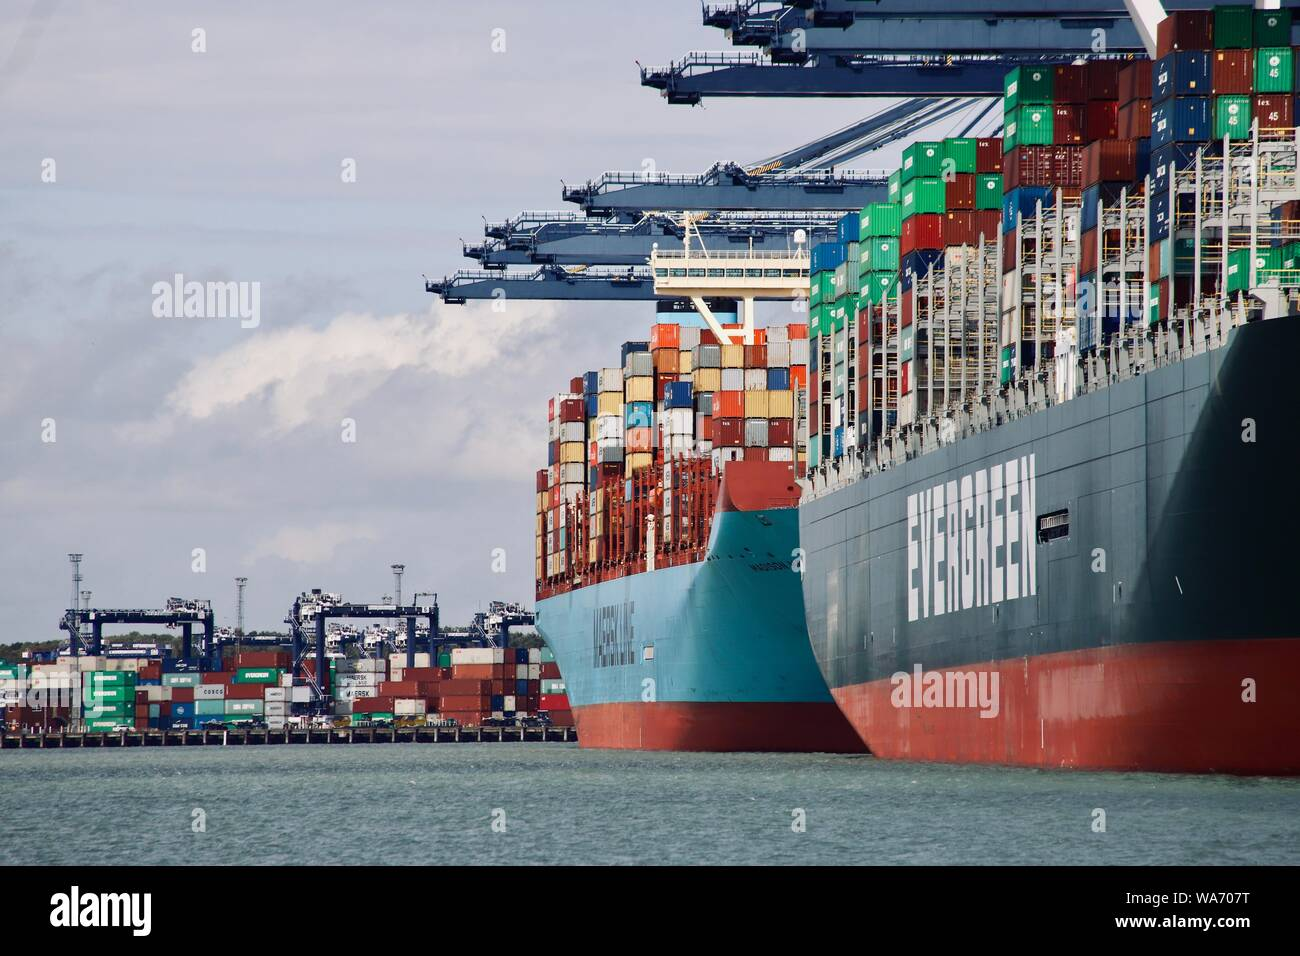 Felixstowe, Suffolk, UK - 18 August 2019: The Evergreen Ever Govern and Maersk Madison container ships at the Port of Felixstowe. Stock Photo